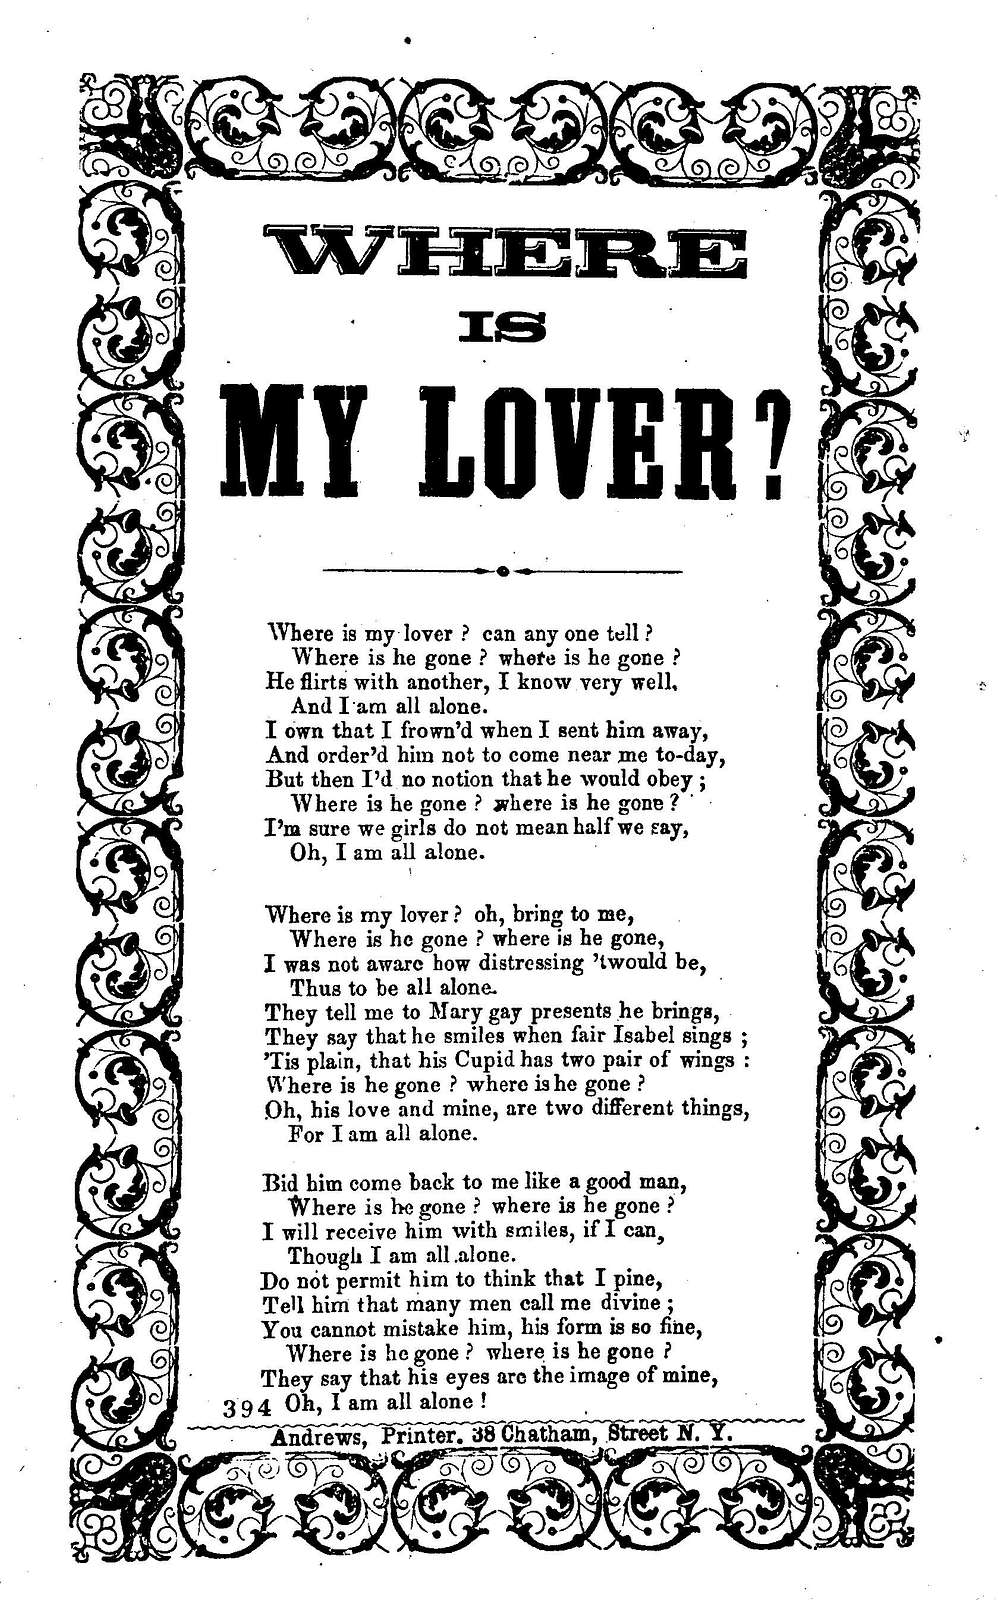 Where is my lover? Andrews, Printer, 38 Chatham Street, N. Y